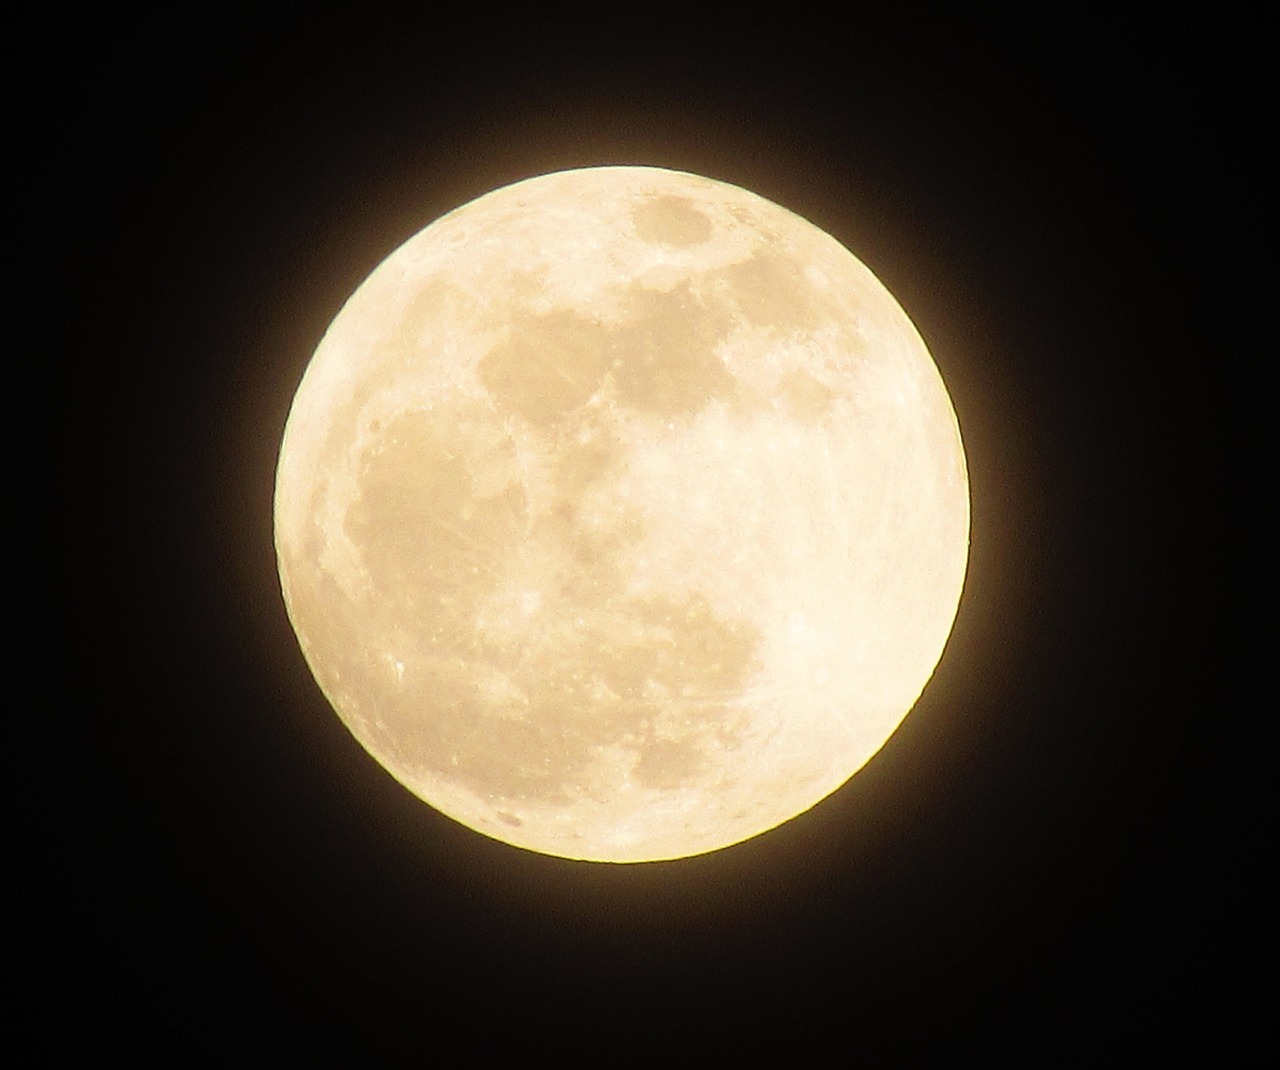 The Tian Fu New Area Science Society aims to launch an artificial moon into space that will provide enough illumination for the city of Chengdu. (Image: pixabay / CC0 1.0)